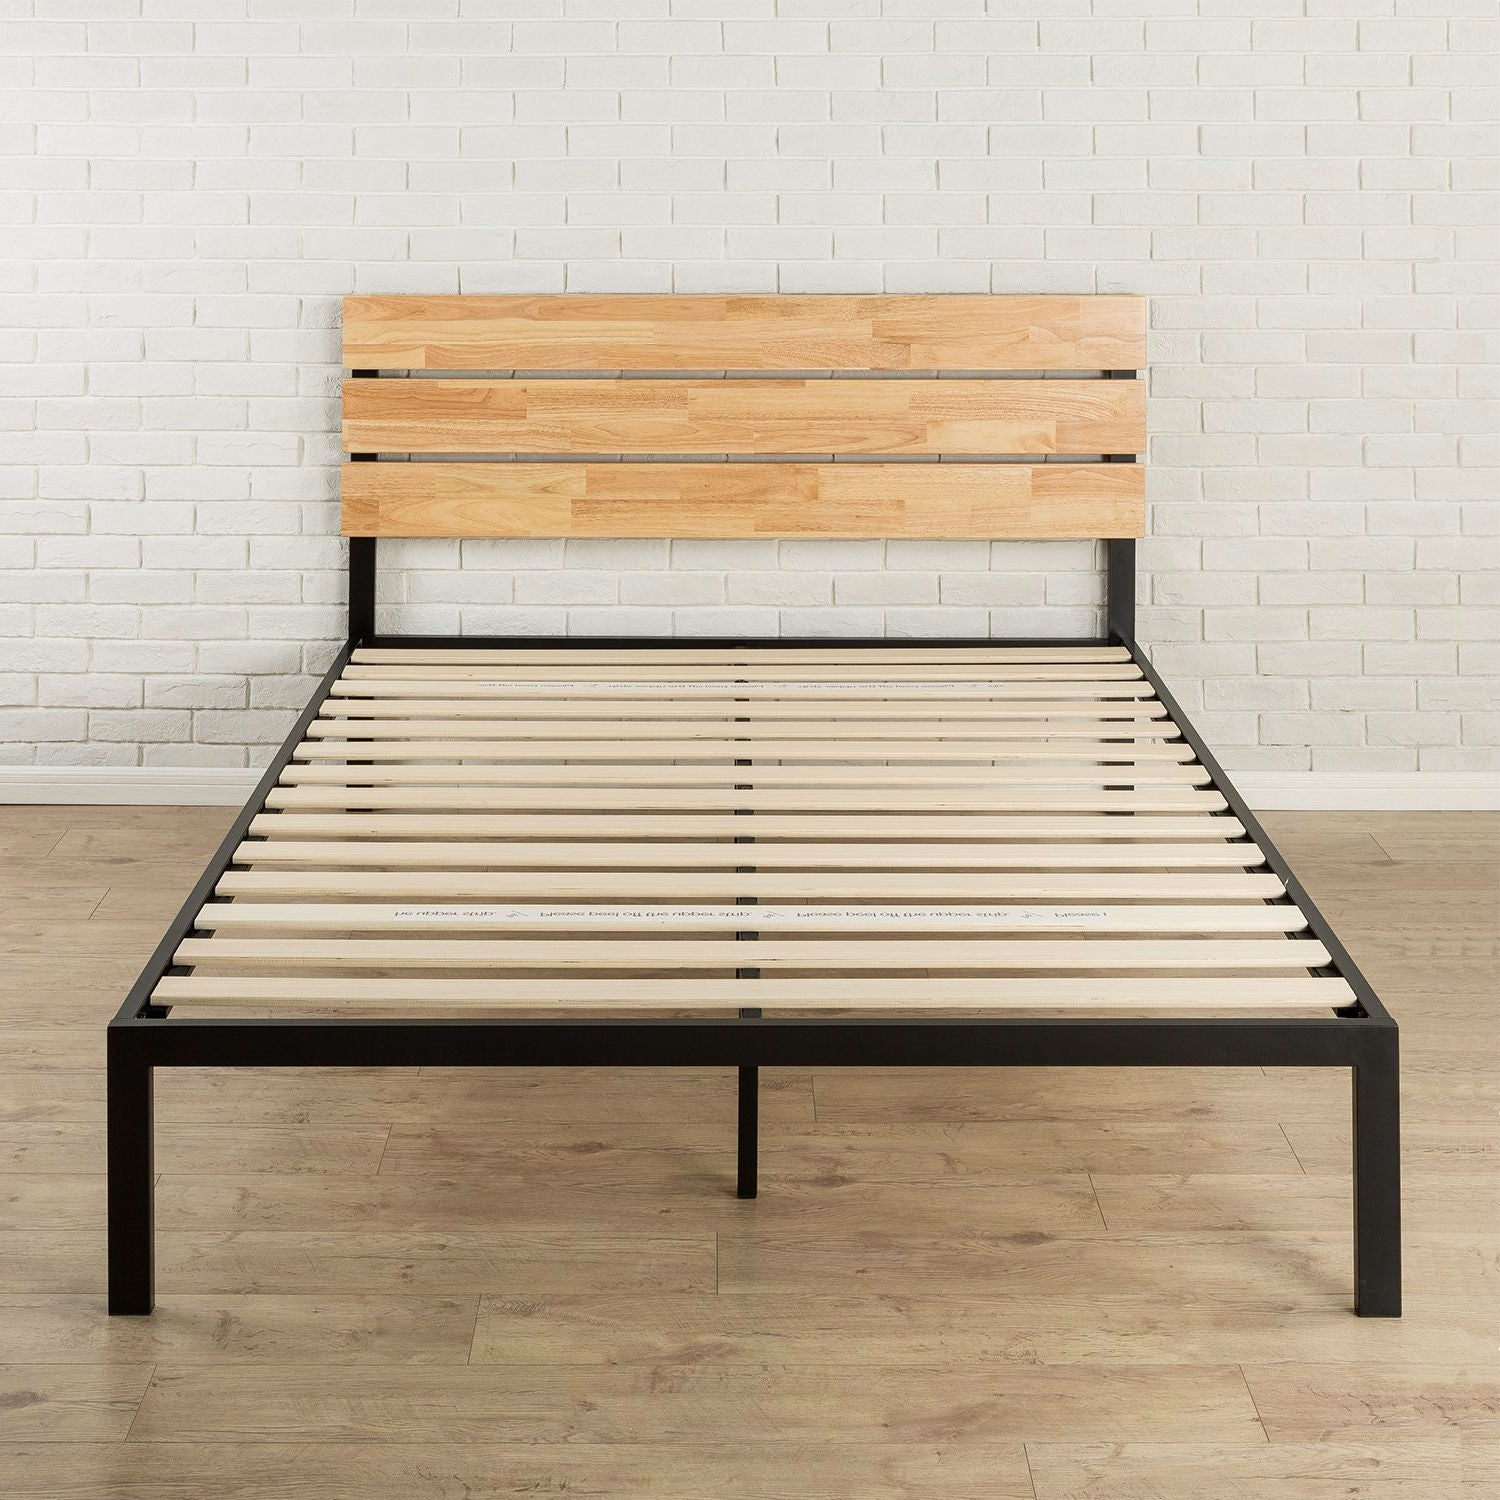 Queen size Modern Wood and Metal Platform bed Frame with Headboard